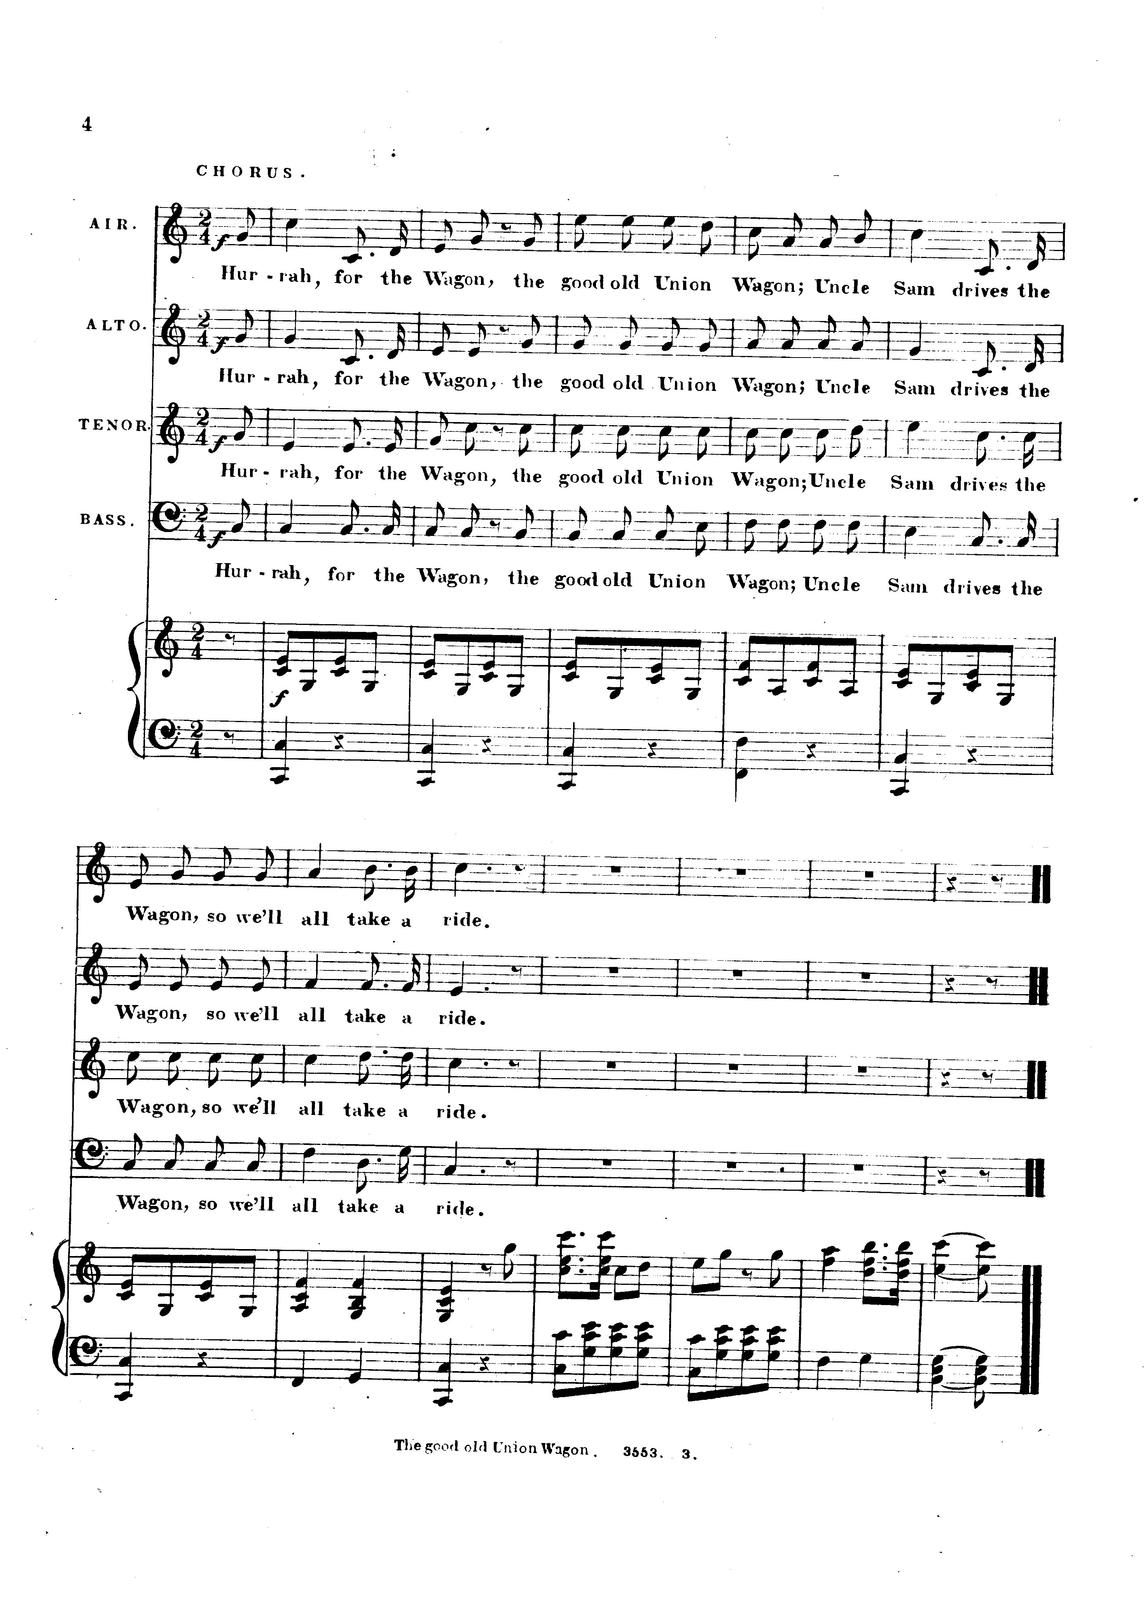 The good old Union wagon: corrected from the original song, called The secession wagon by S. Matthews.